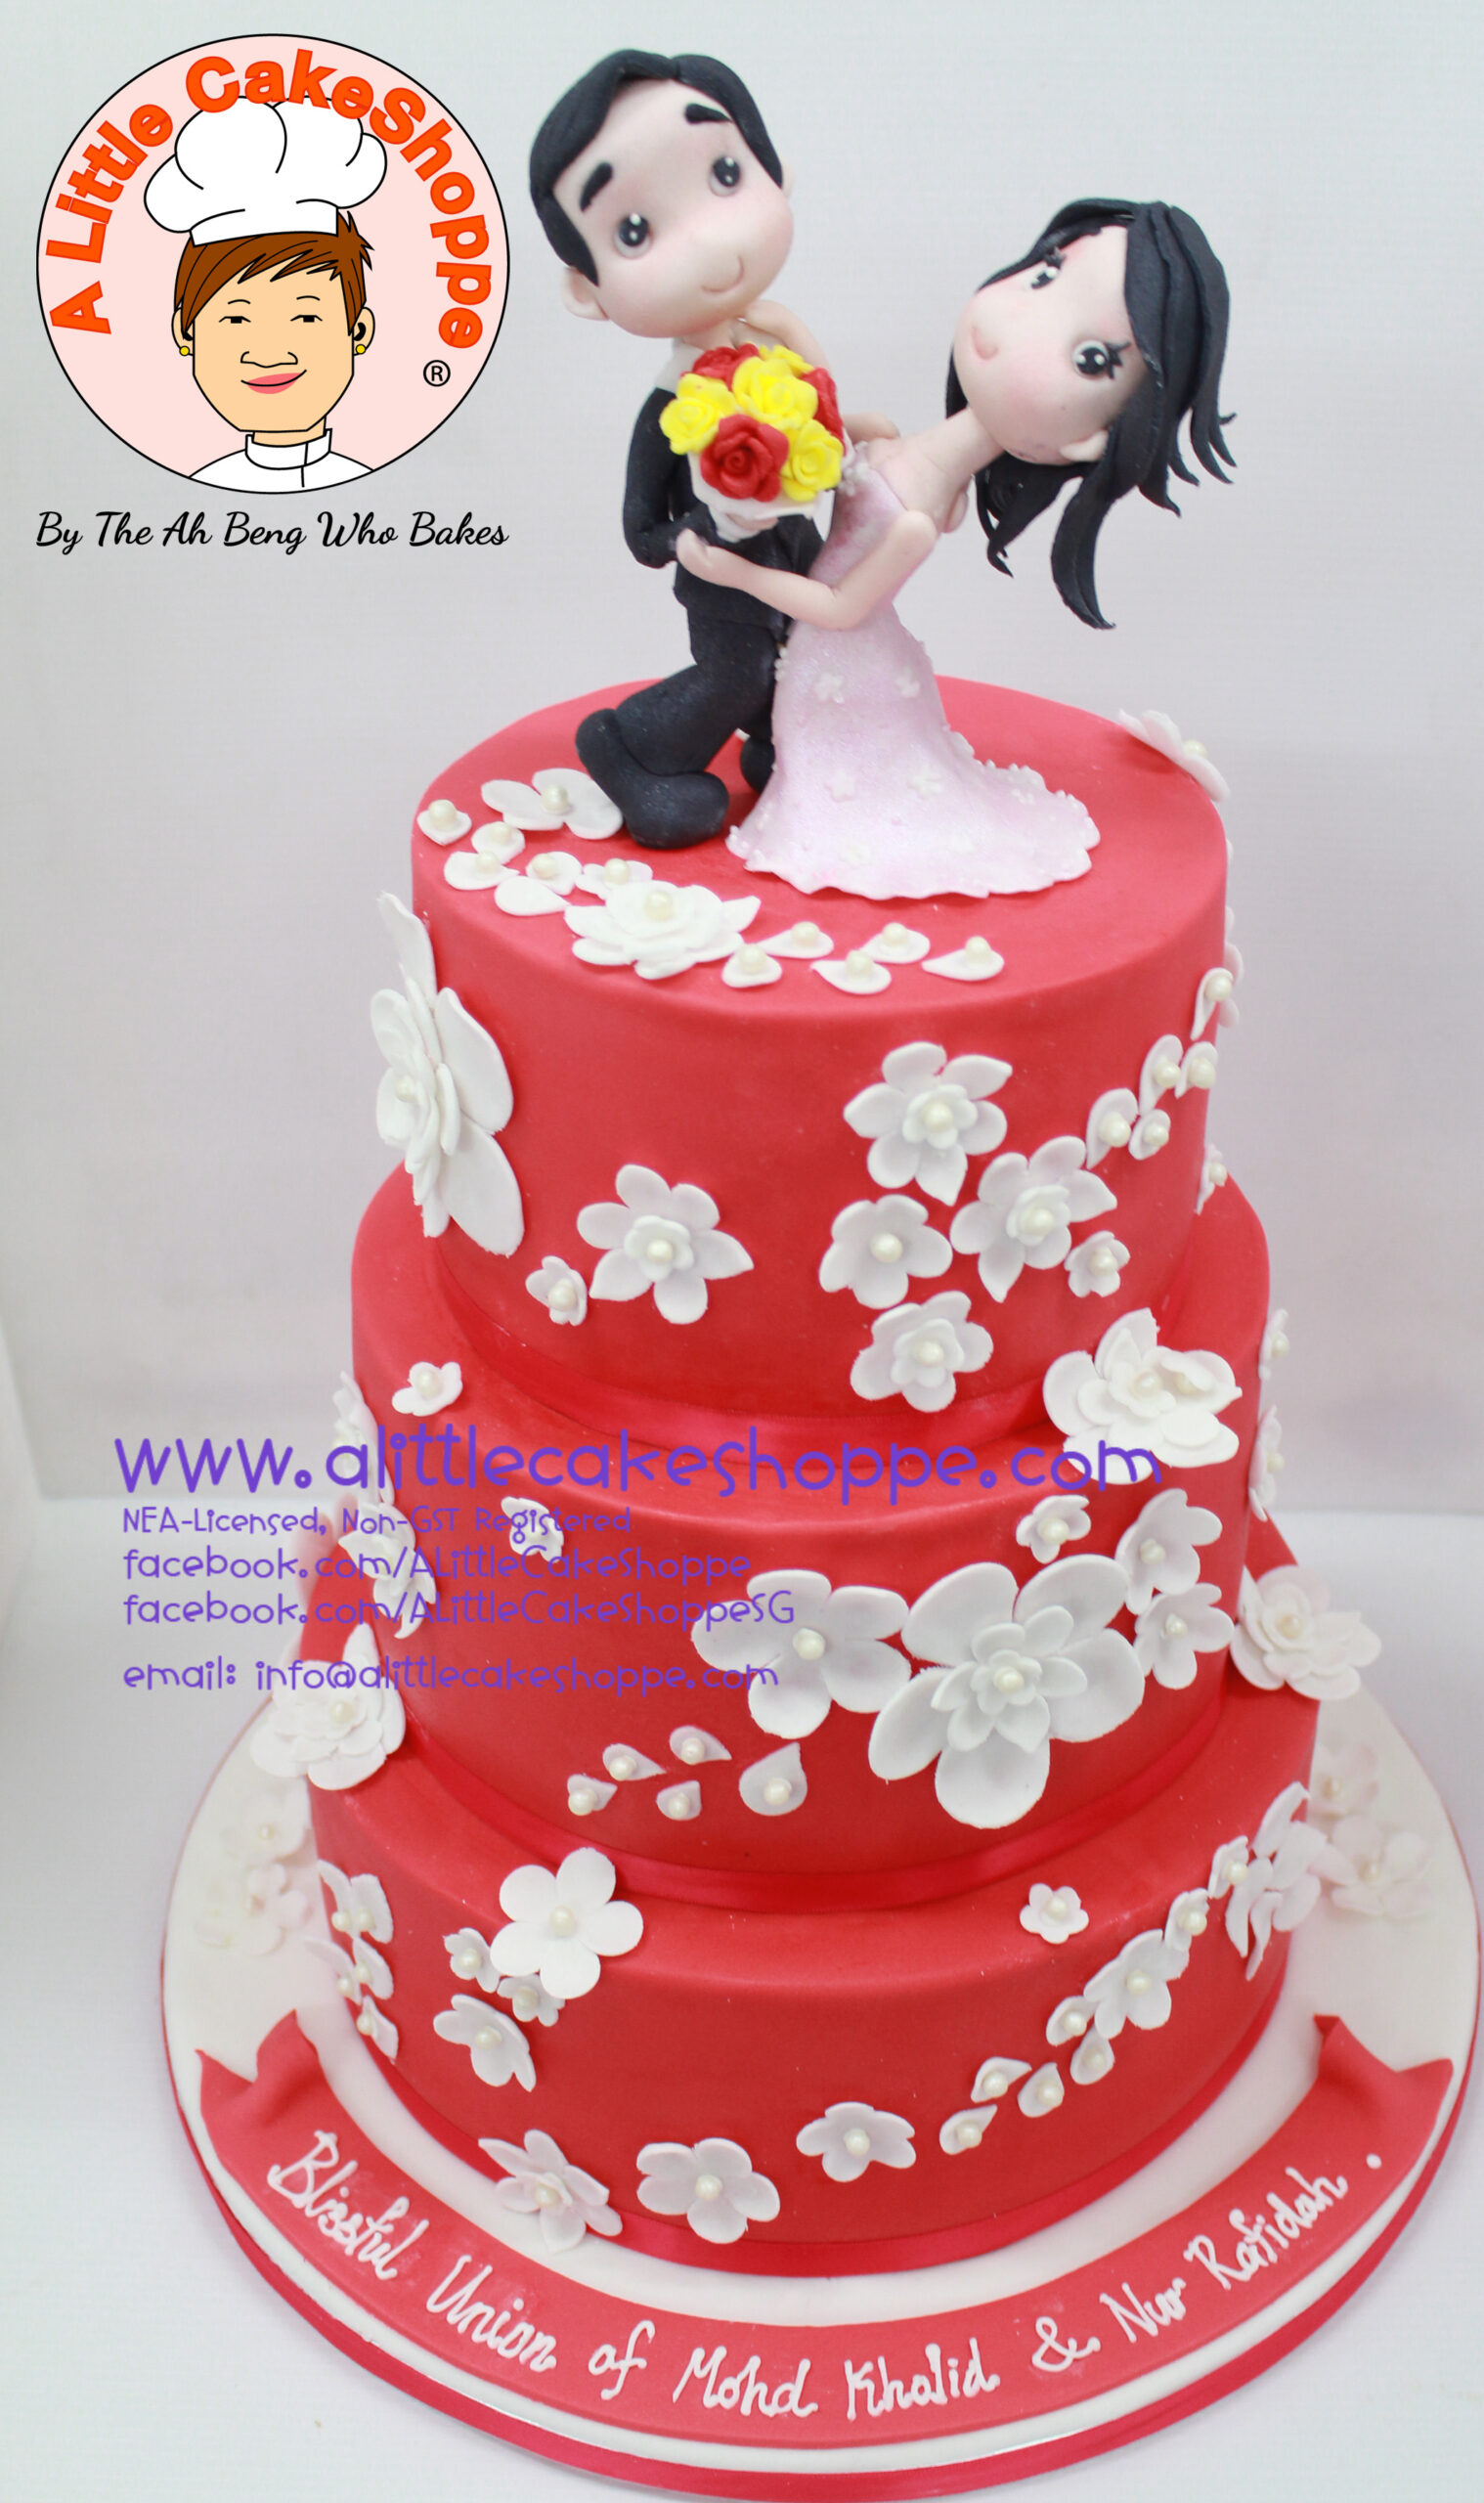 Best Customised Cake Singapore custom cake 2D 3D birthday cake cupcakes wedding corporate events anniversary fondant fresh cream buttercream cakes alittlecakeshoppe a little cake shoppe compliments review singapore bakers SG cakeshop ah beng who bakes wedding